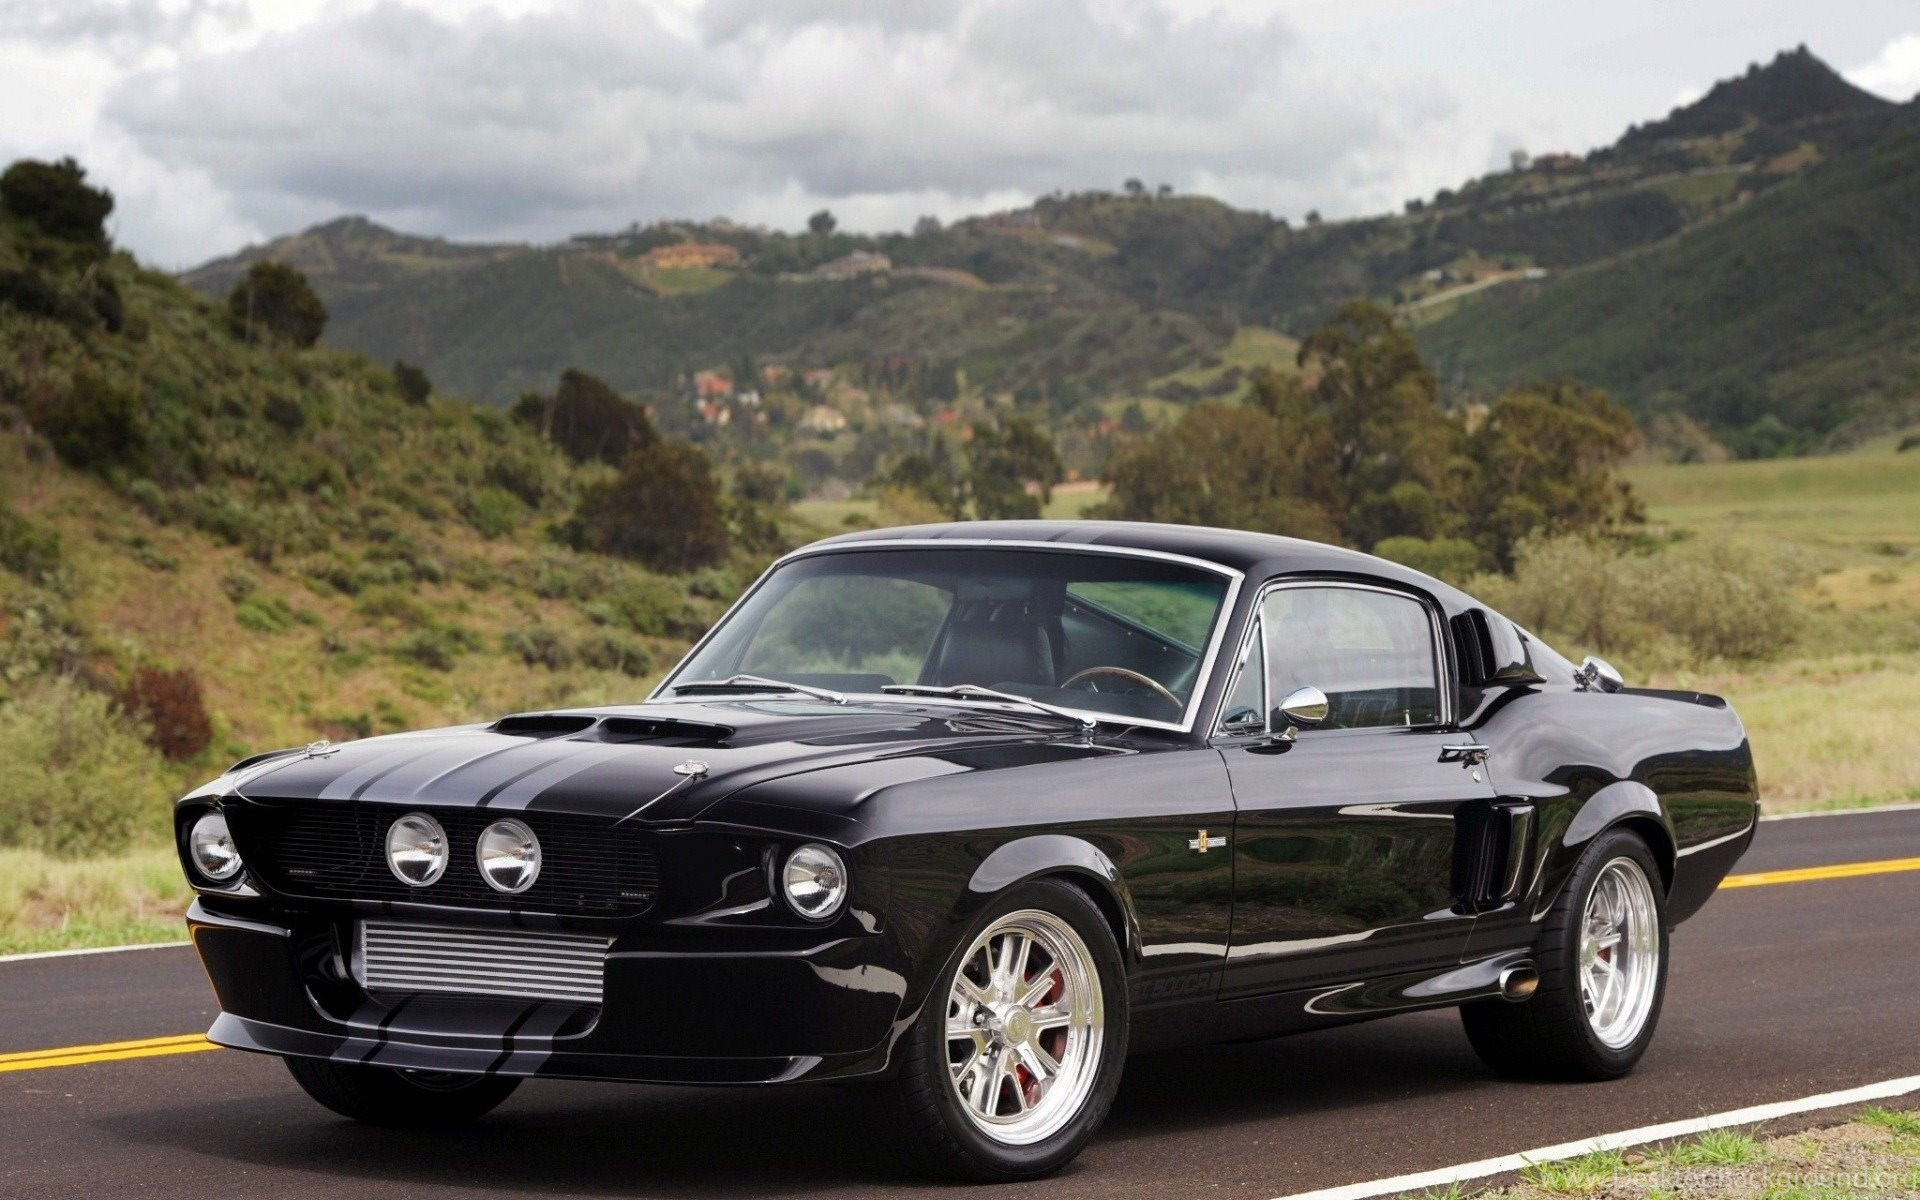 Black Ford Mustang Gt Cars 1920x1200 Hd Wallpapers And Free Stock